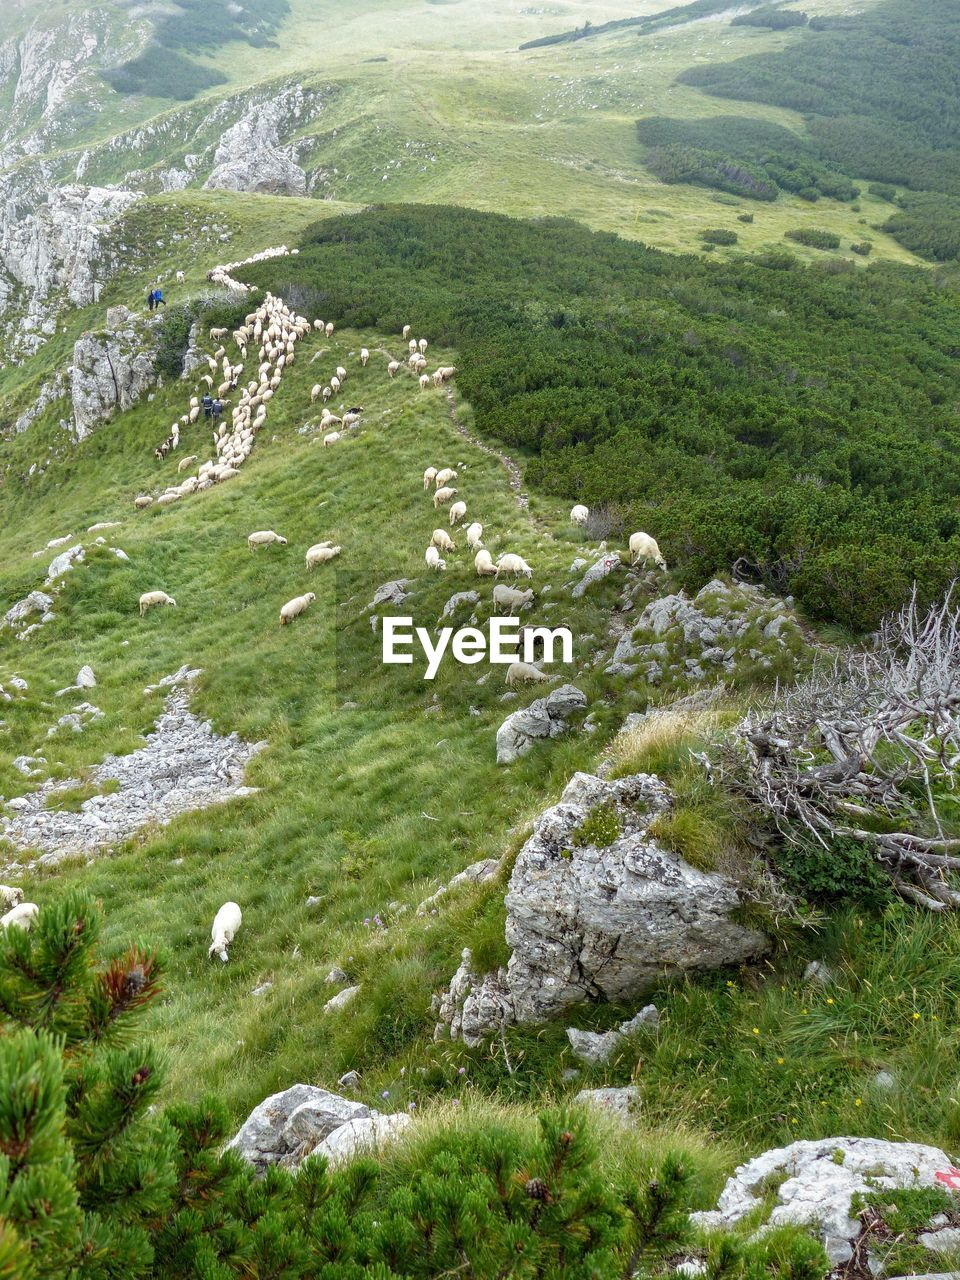 High Angle View Of Flock Of Sheep On Mountains